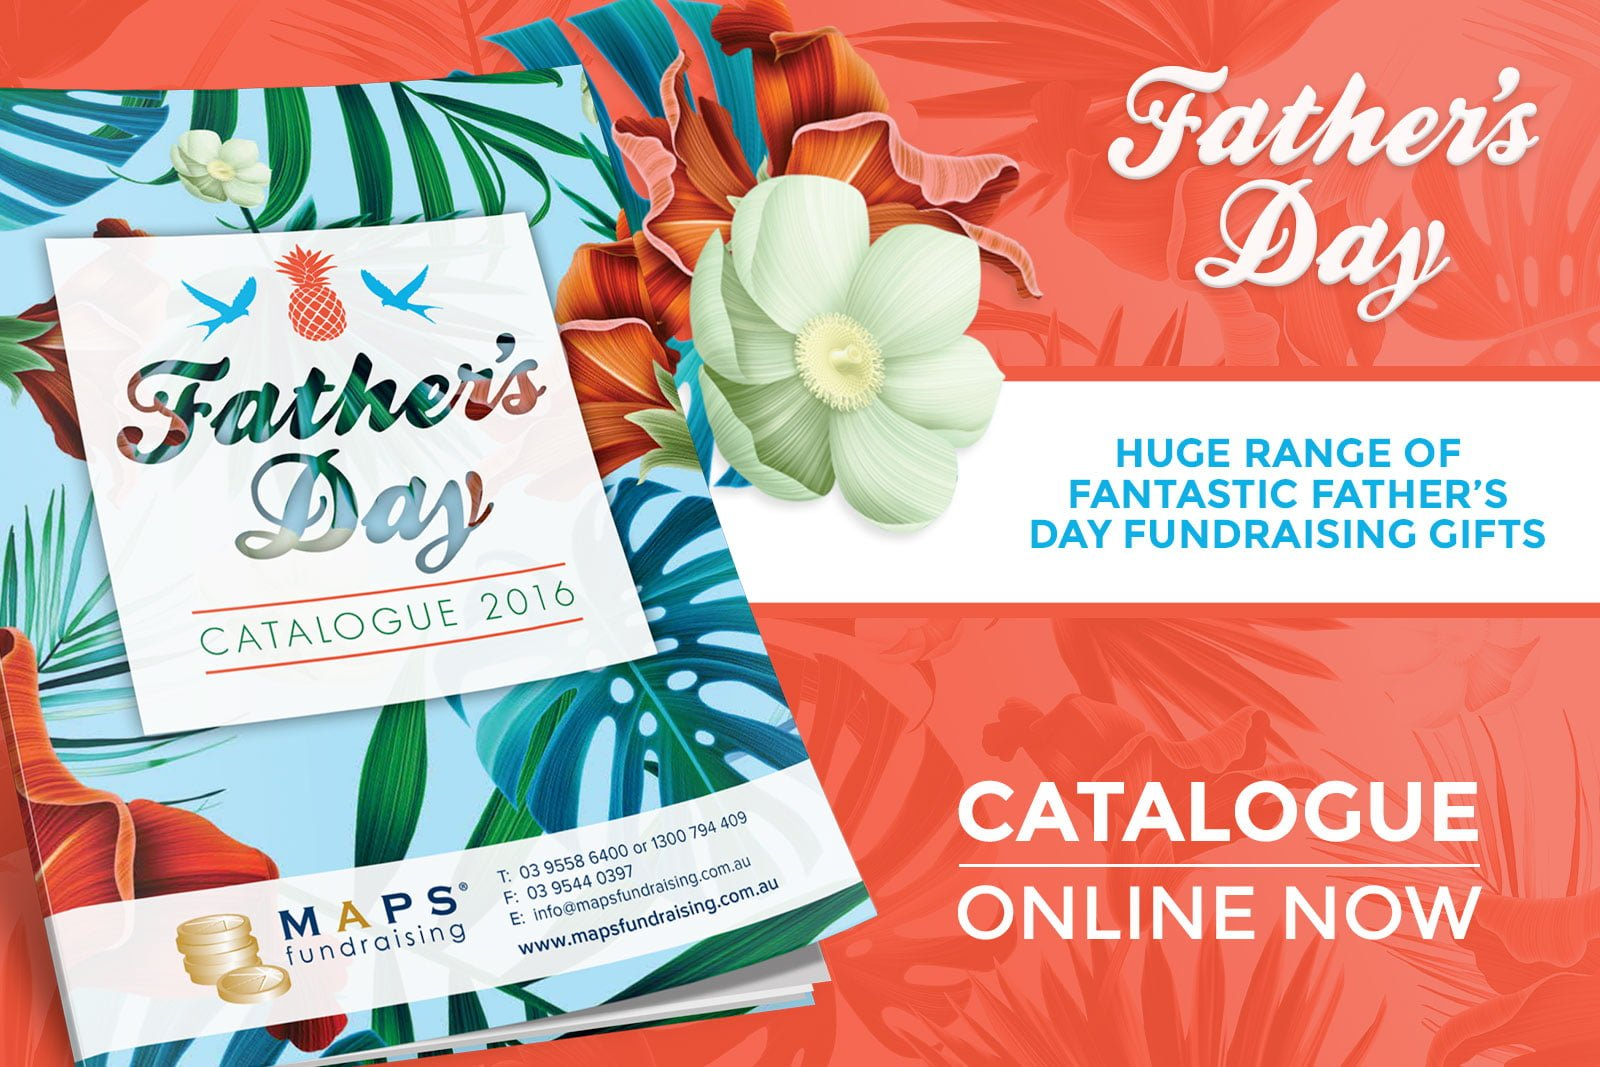 Father's Day Catalogue 2016